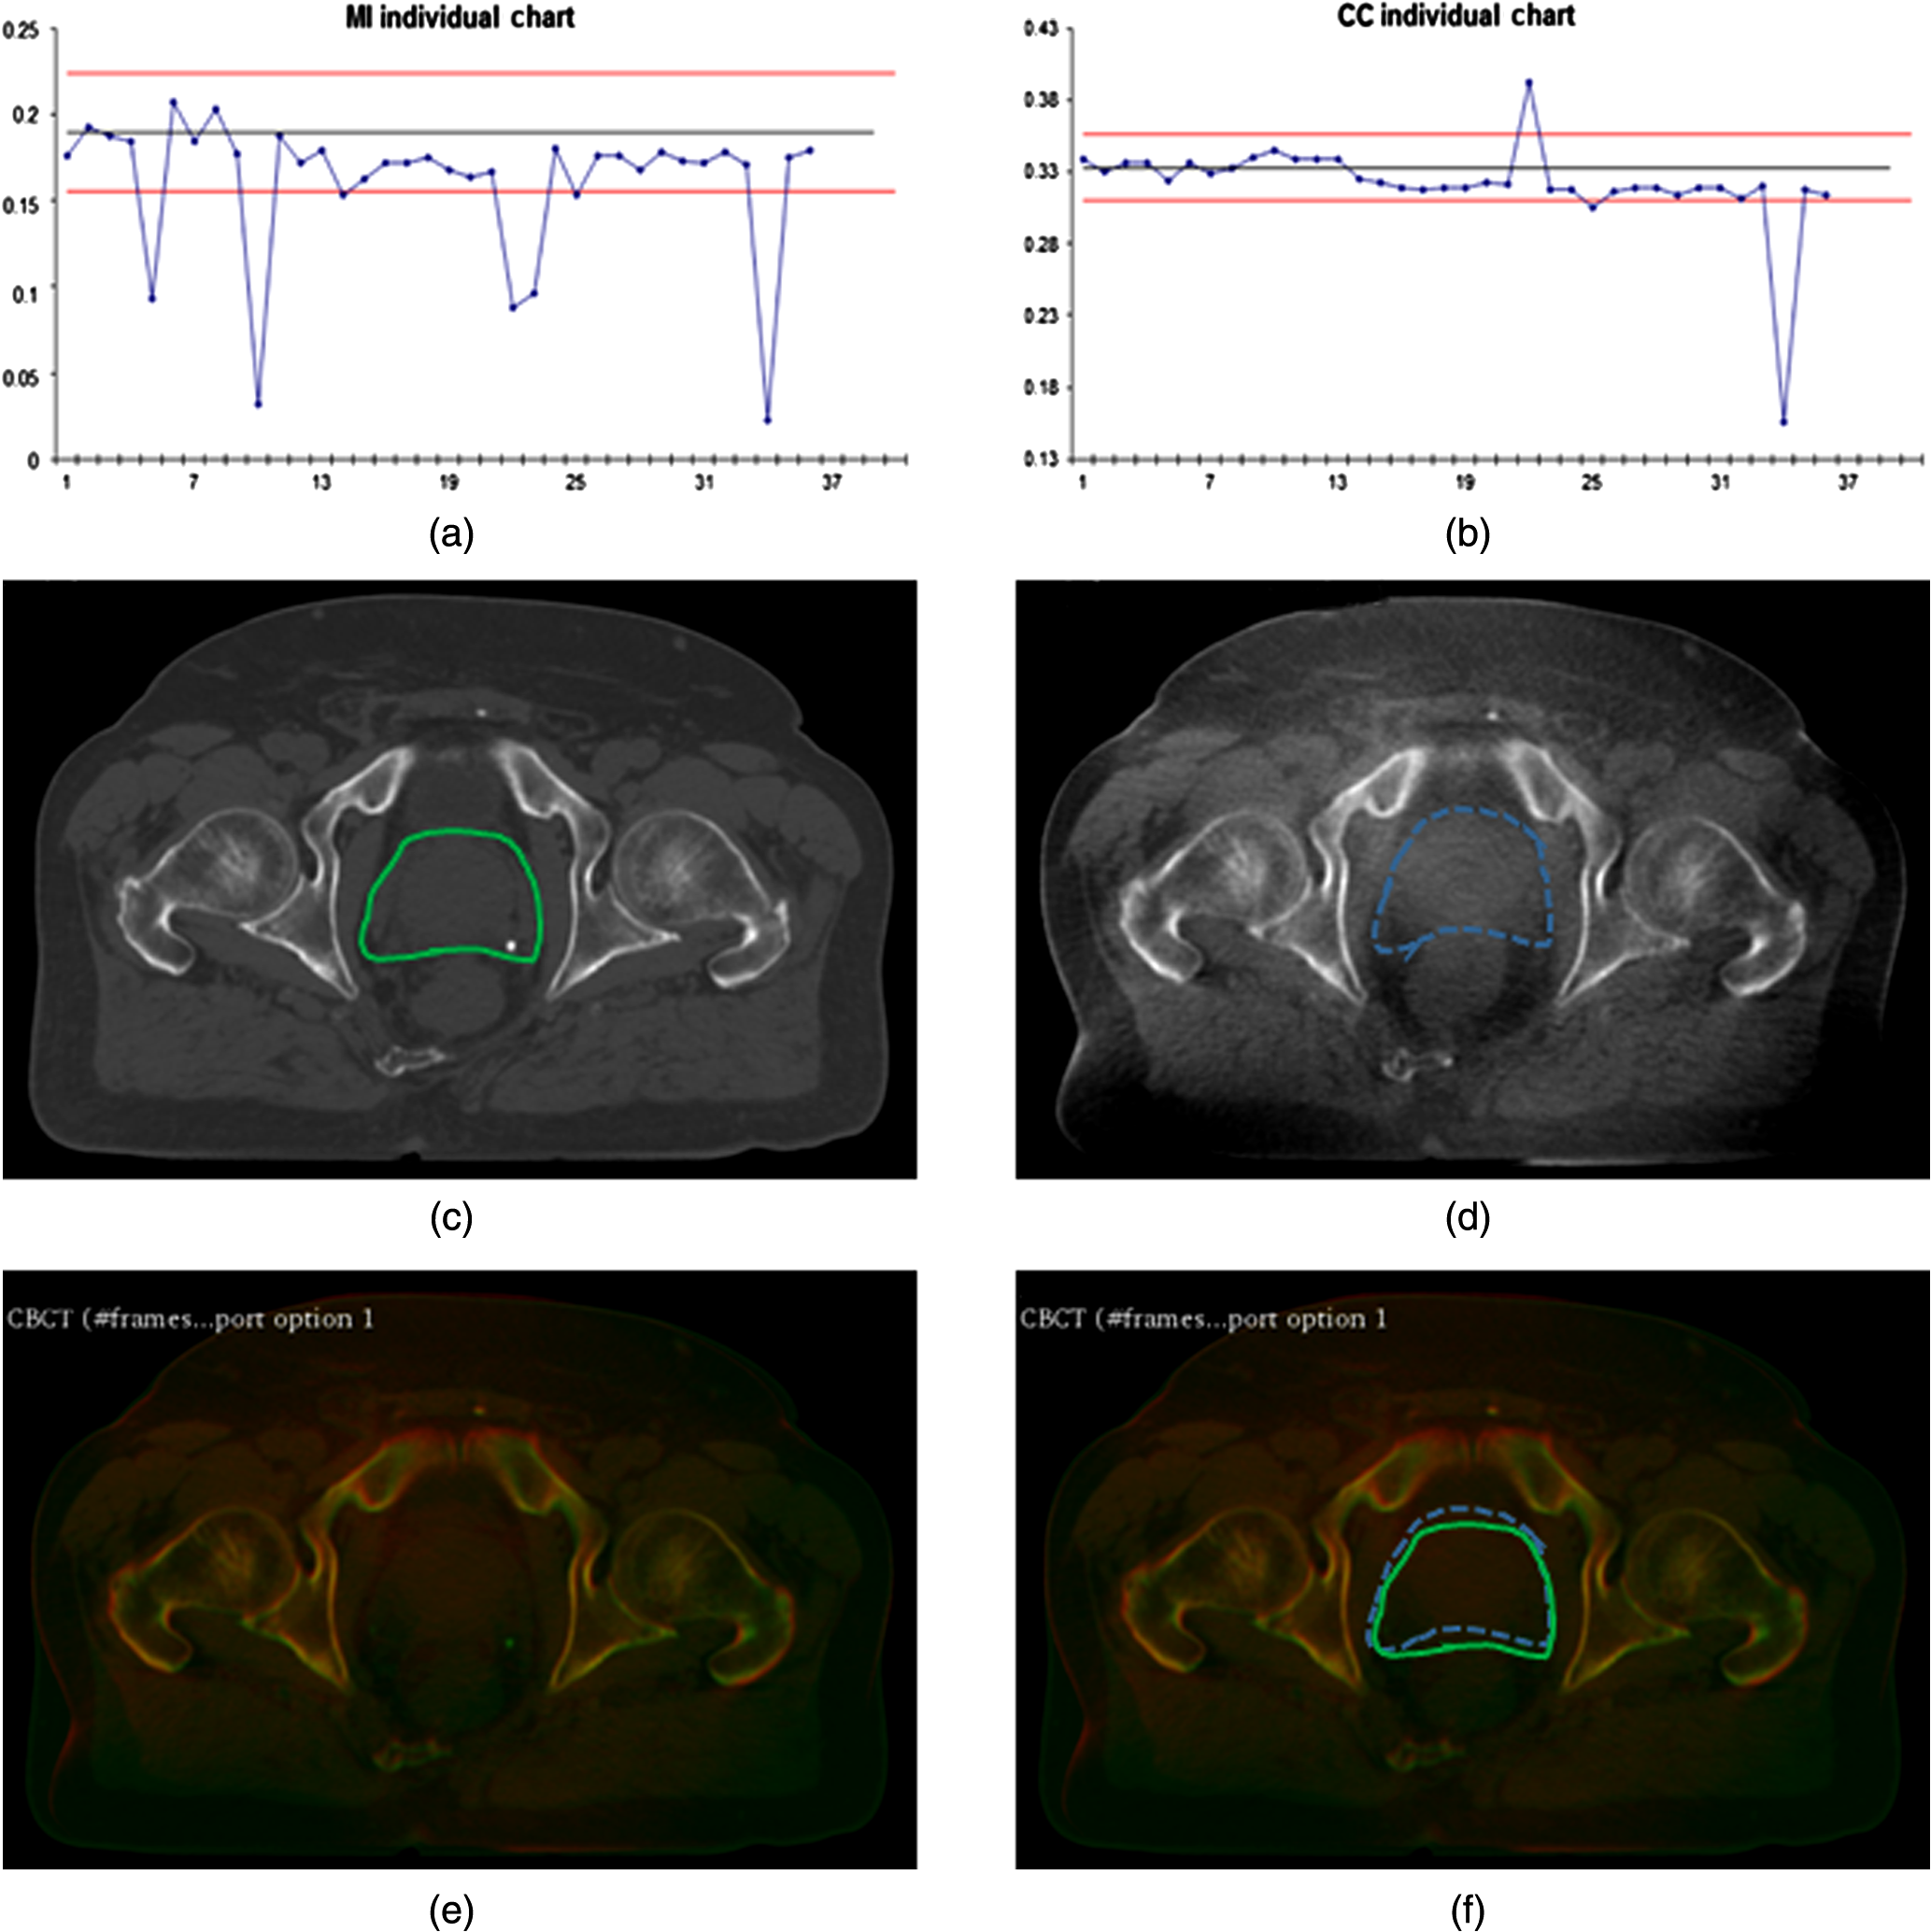 Image registration assessment in radiotherapy image guidance based jmi52021221f007g fandeluxe Image collections